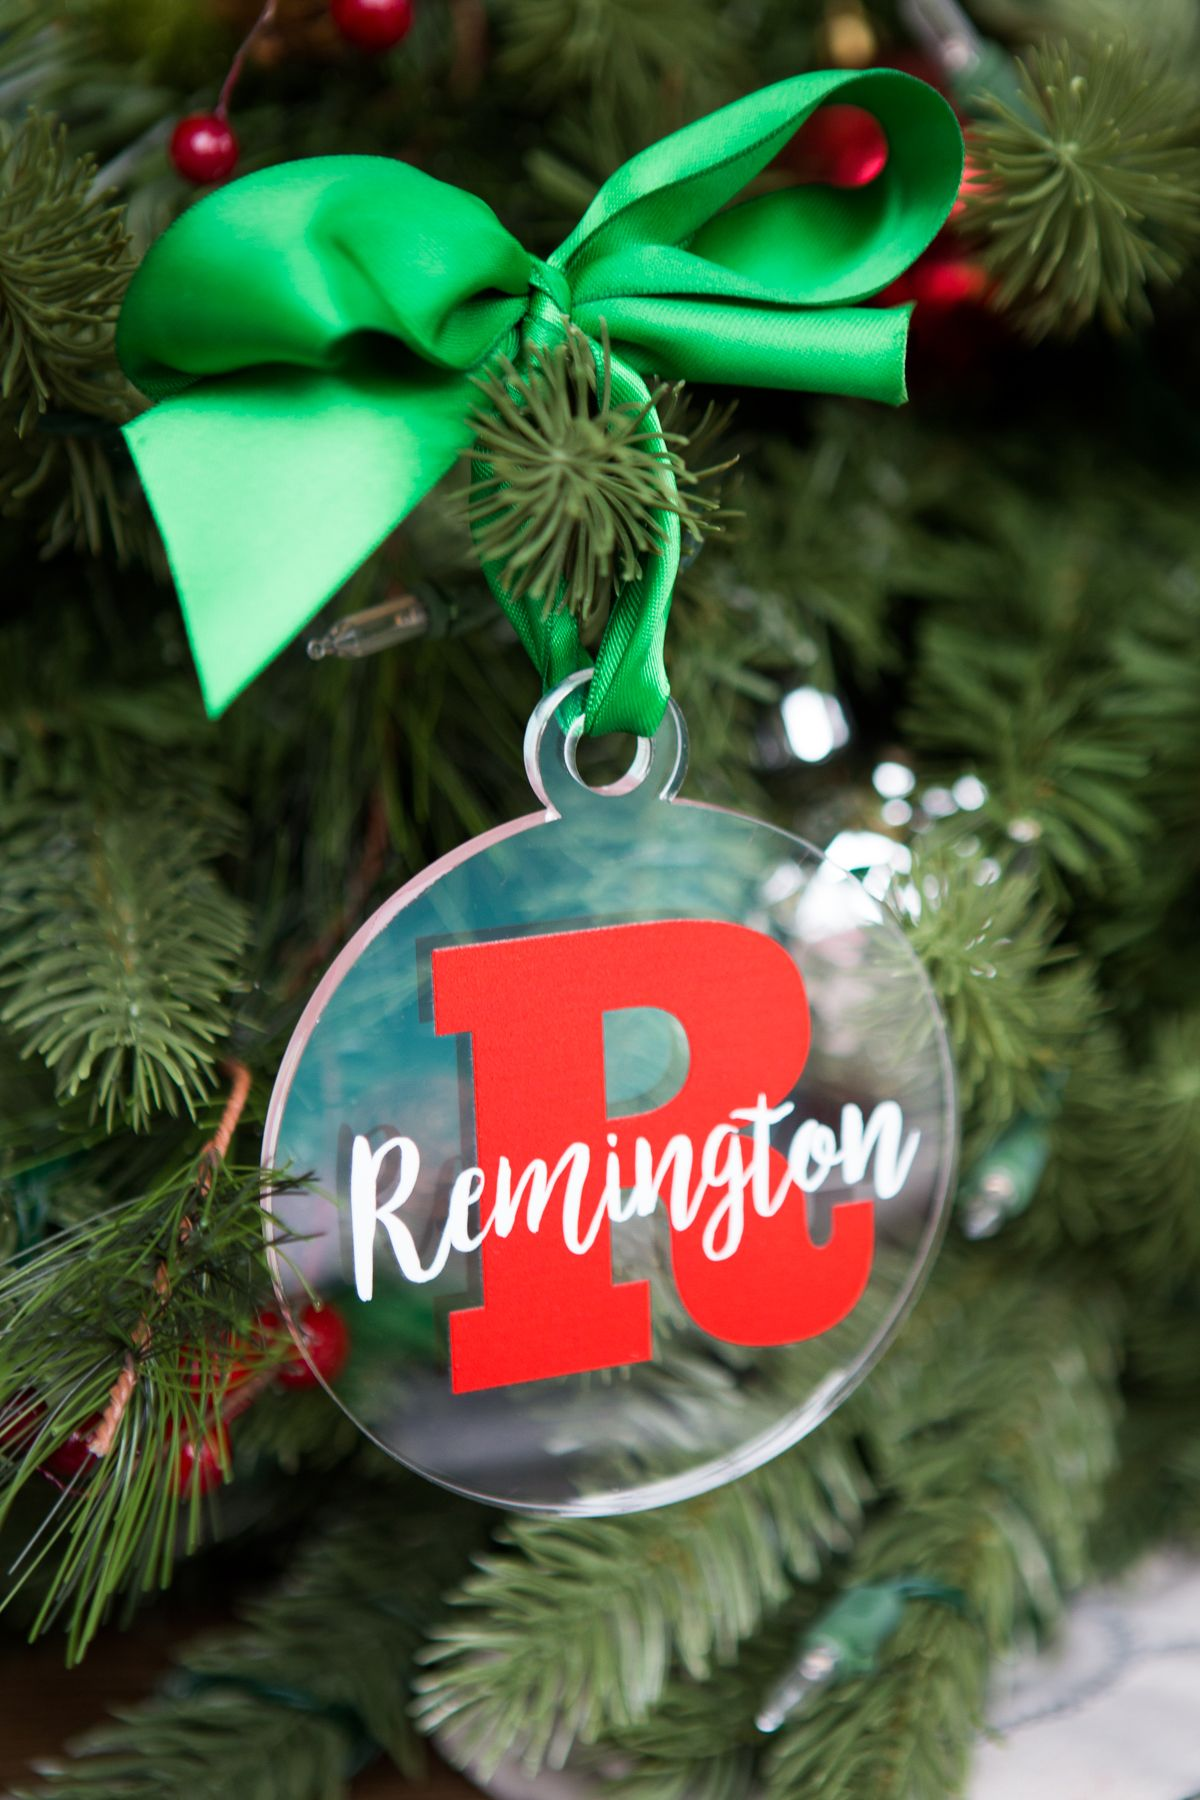 Christmas Ornament Personalized Name And Letter Clear Acrylic Etsy Christmas Ornaments Personalized Christmas Ornaments Christmas Tree Ornaments